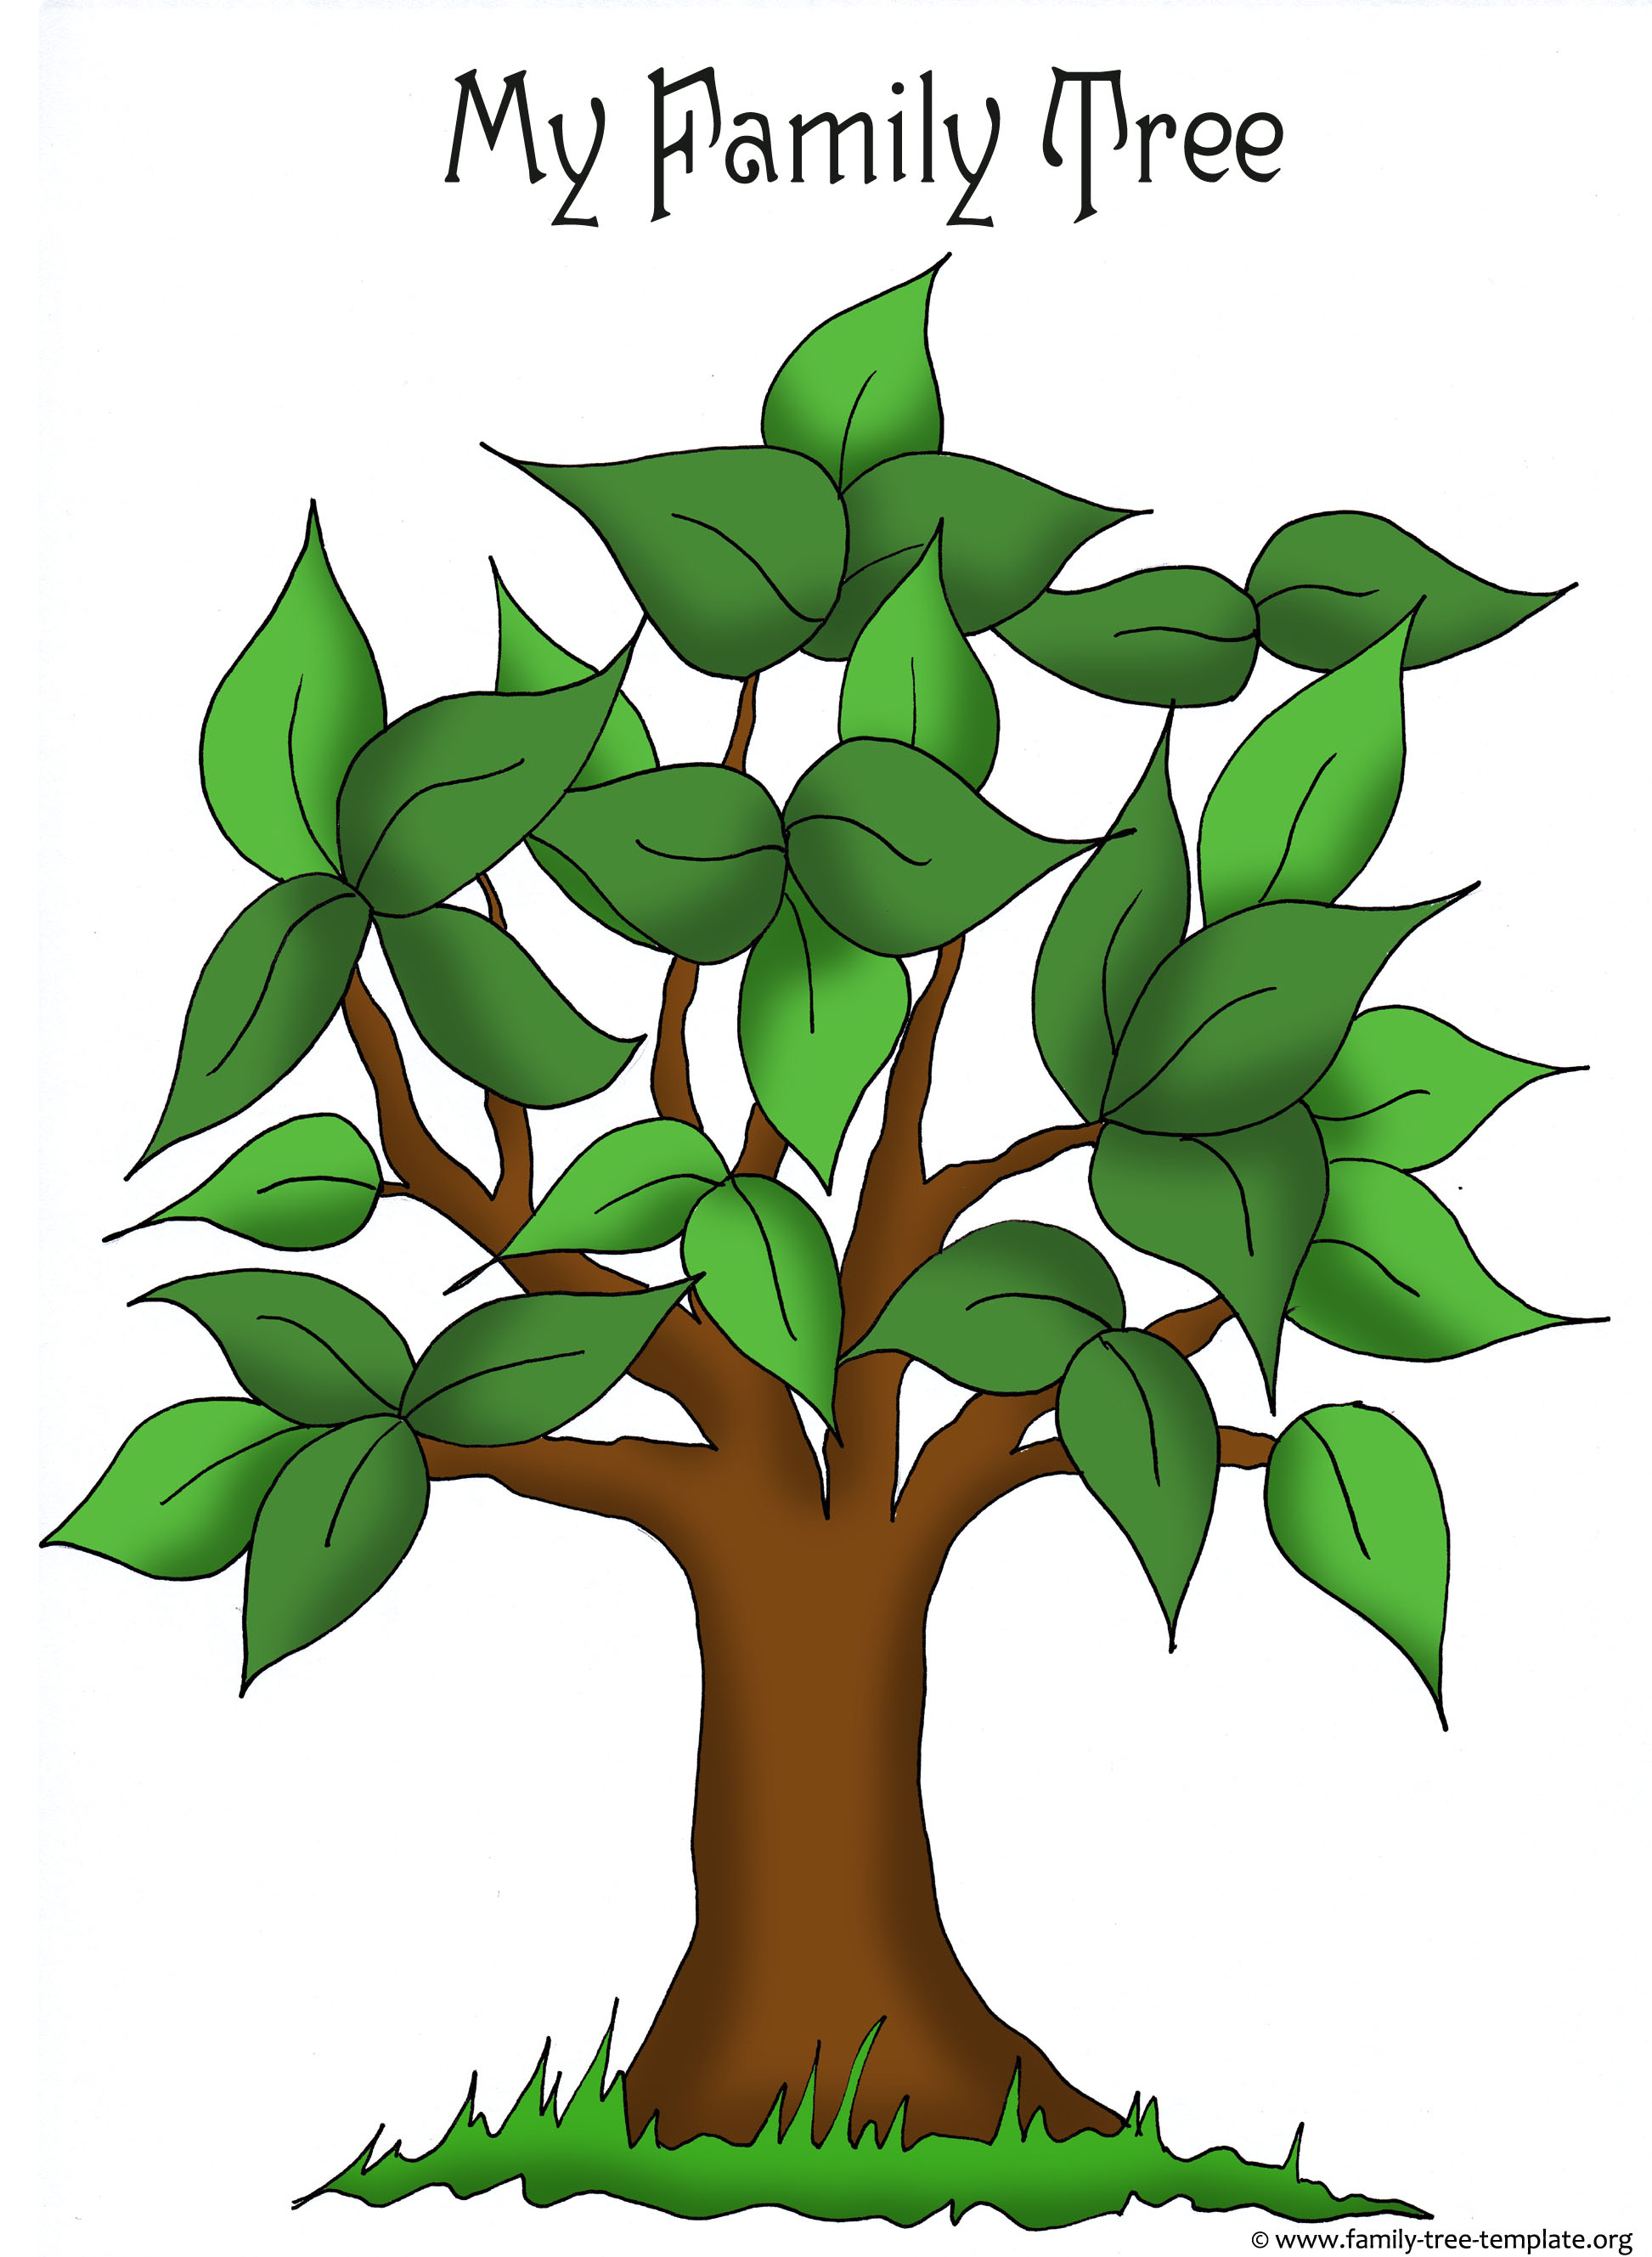 Family Tree Templates & Genealogy Clipart for Your Ancestry Map